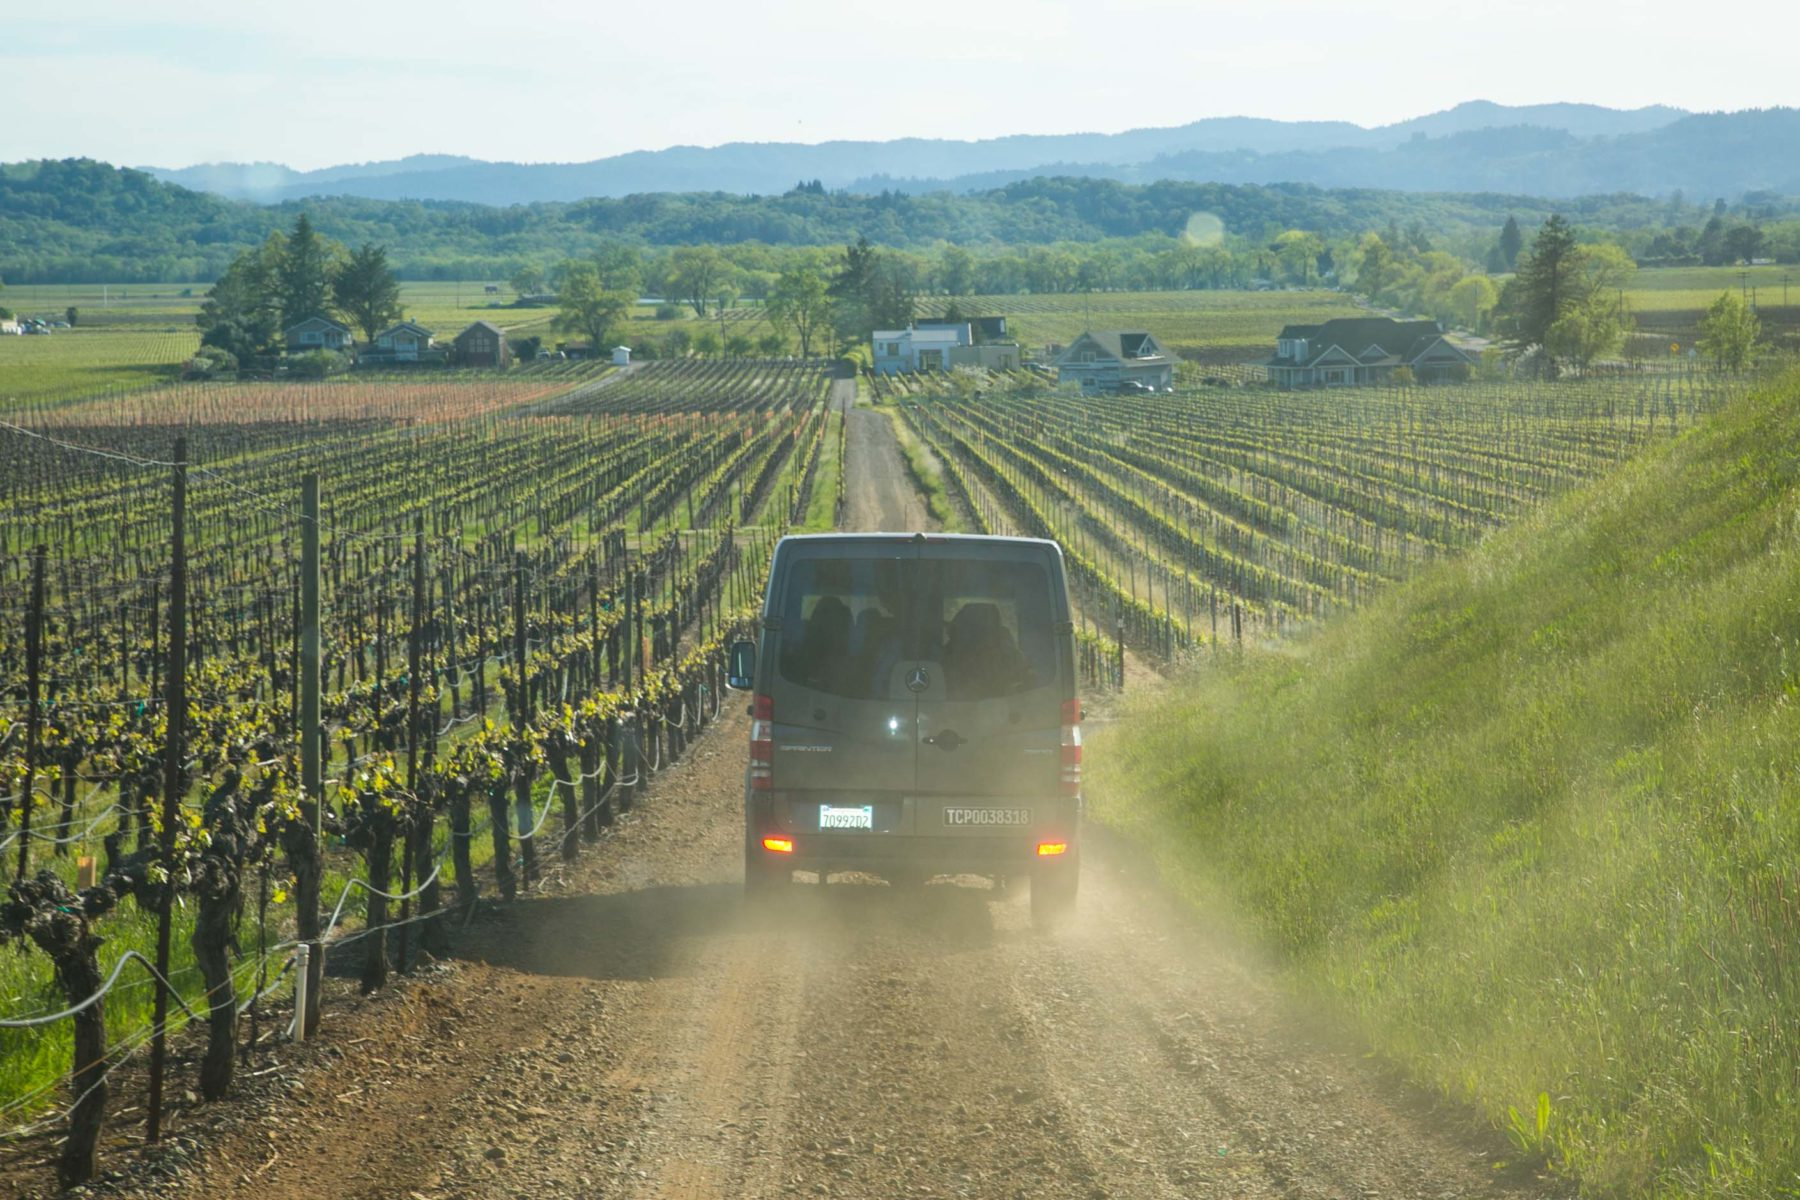 Alexander Valley tour